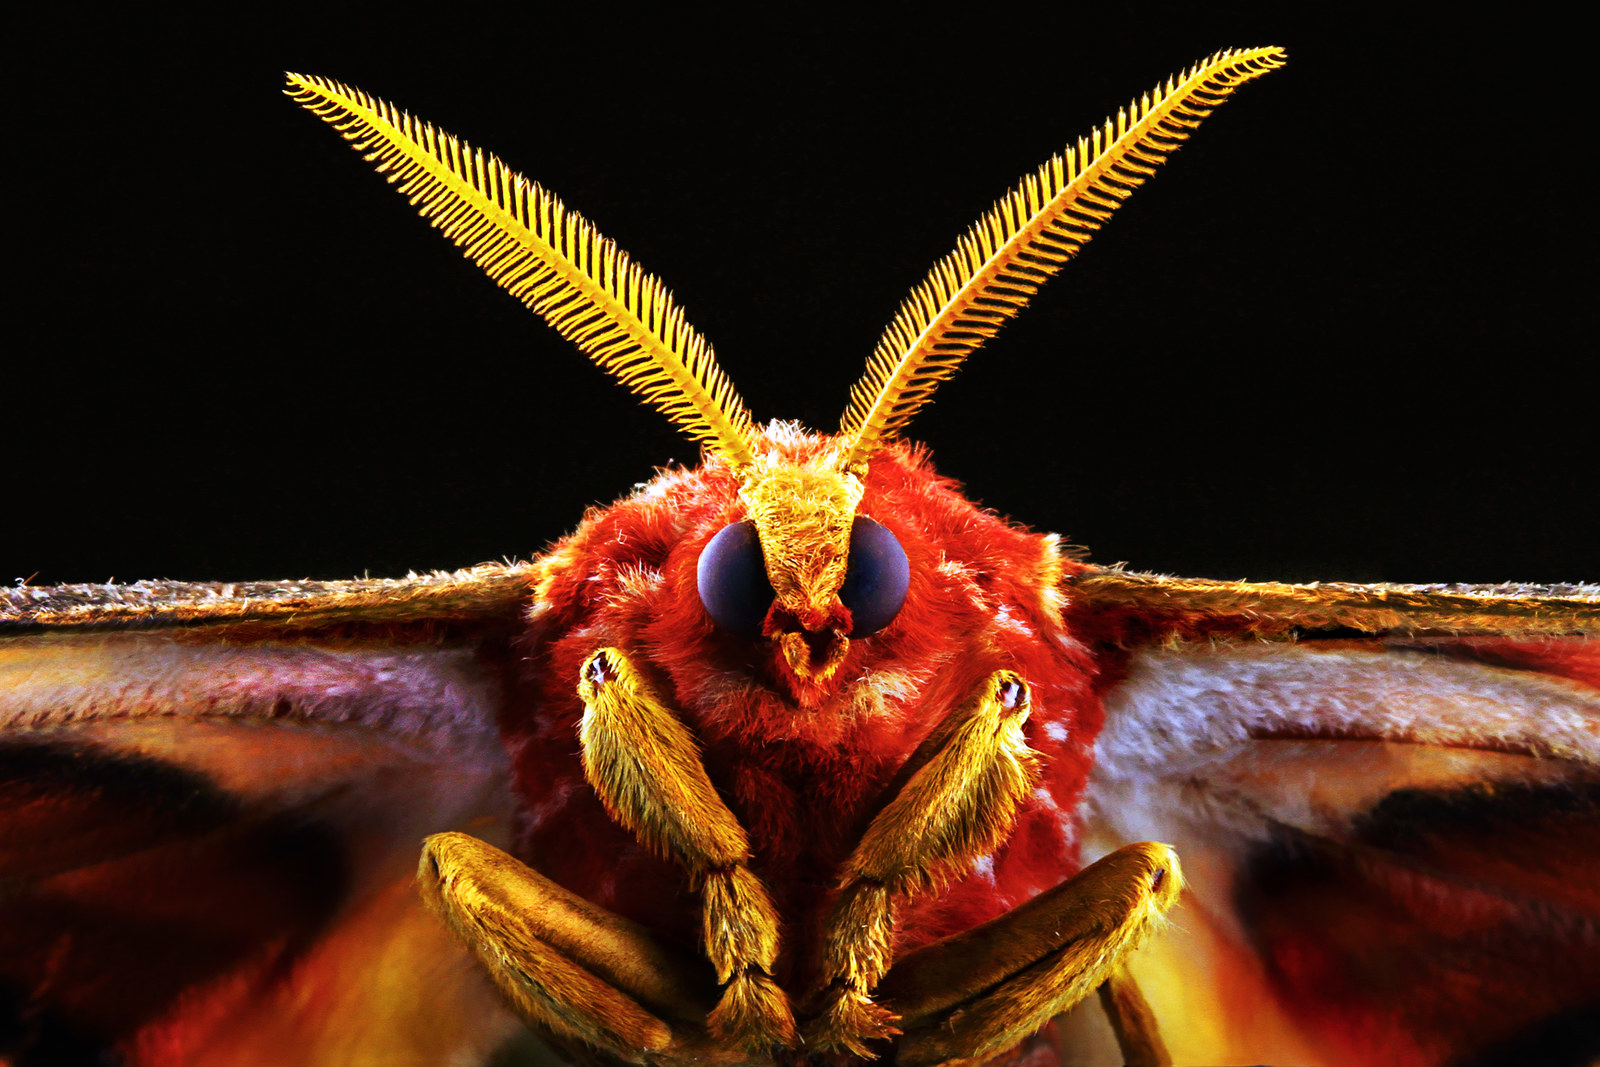 Turns Out, Moths Are Hella Cute Up Close